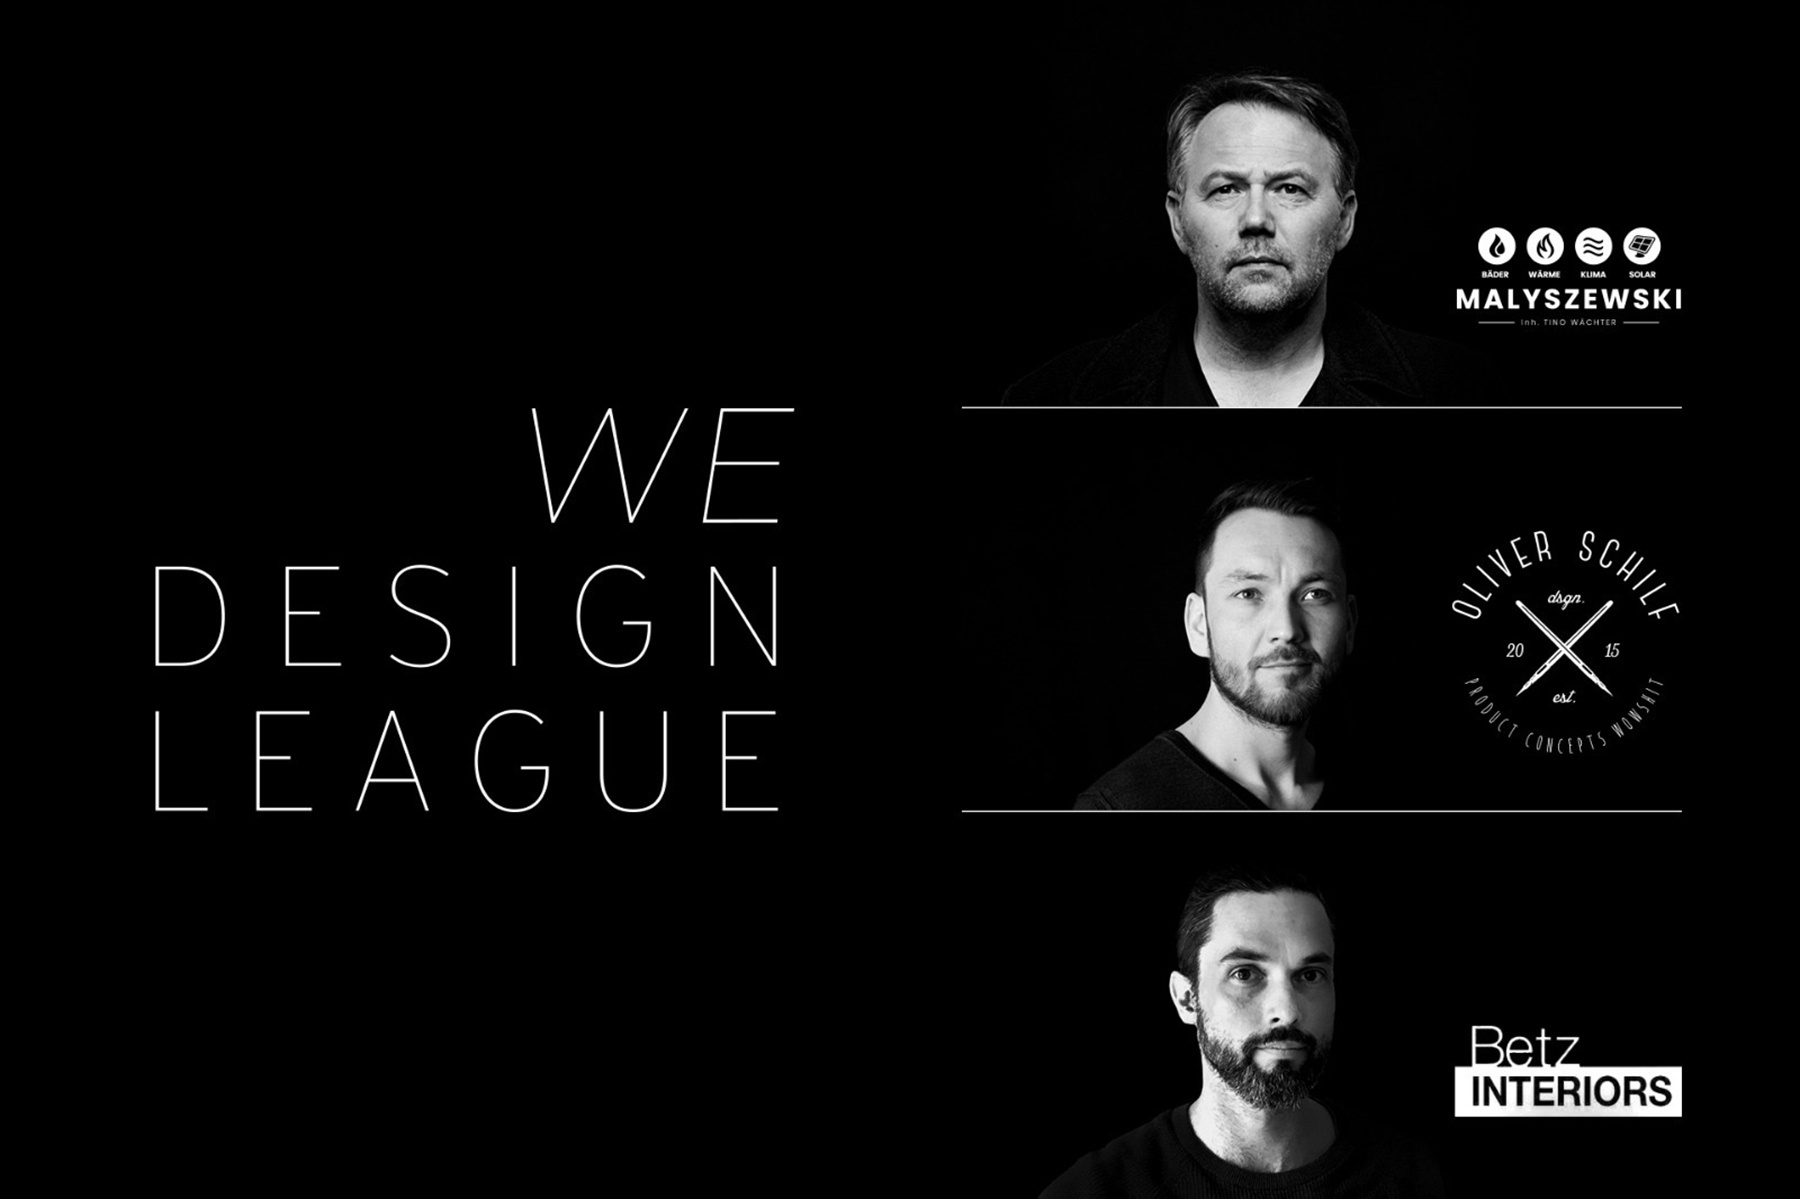 WE DESIGN LEAGUE